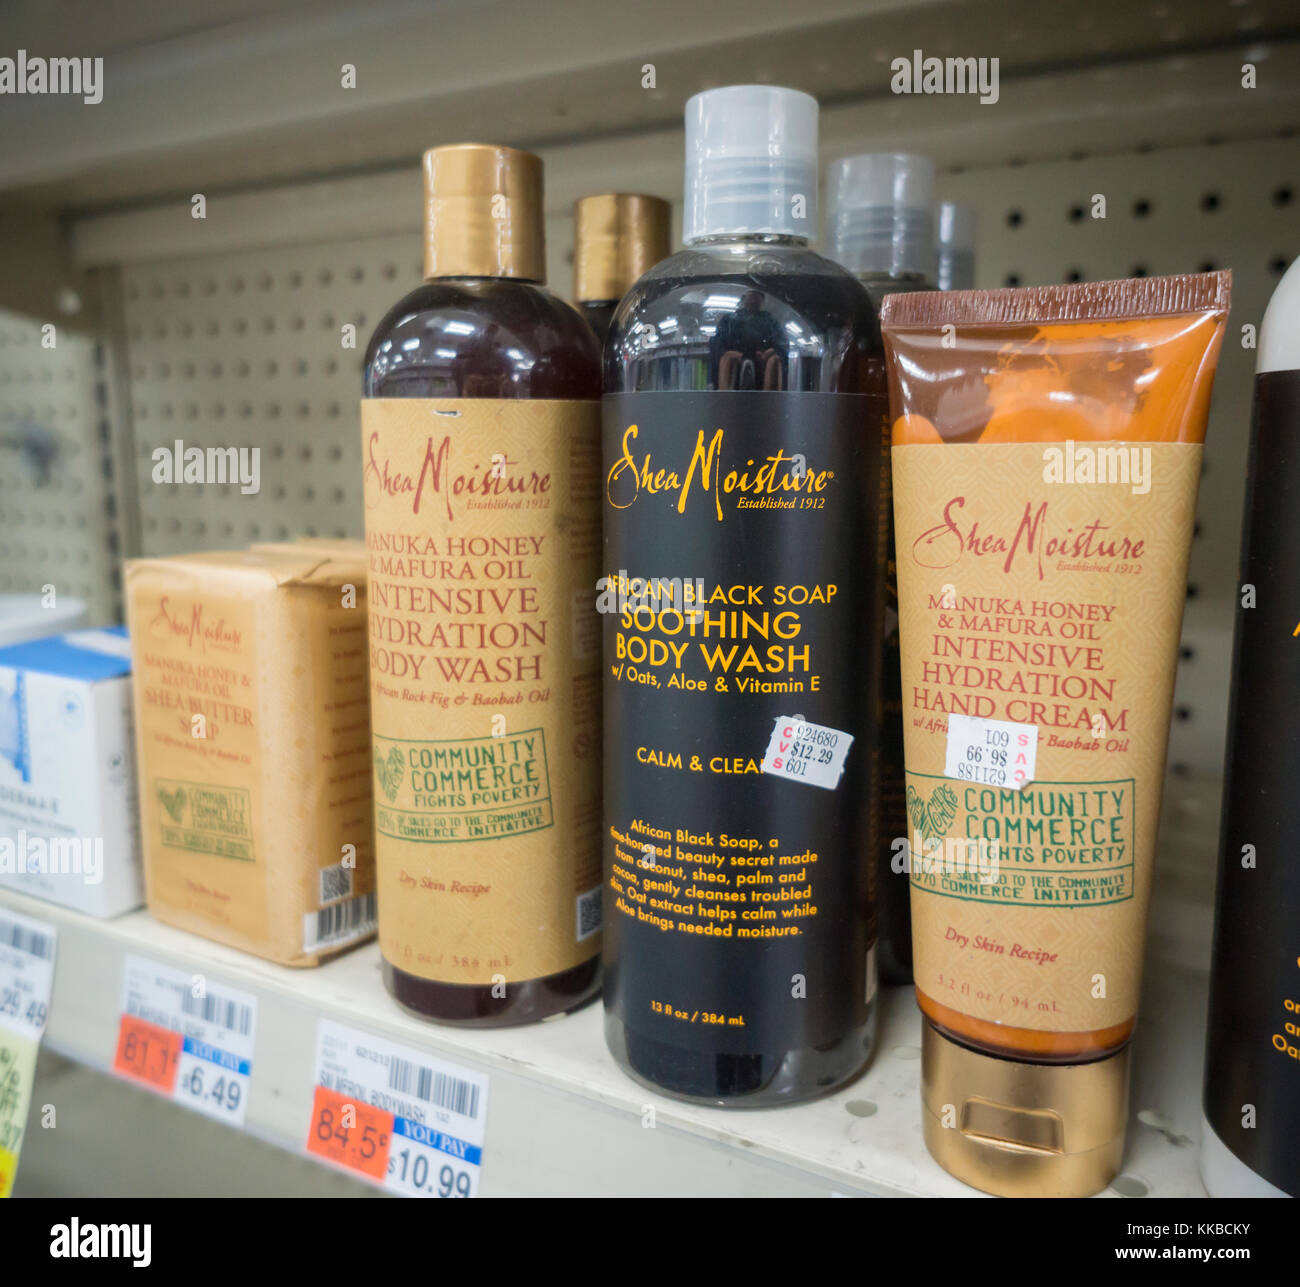 Bottles of Sundial Brands' Shea Moisture beauty products in a drugstore in New York on Tuesday, November 28, - Stock Image